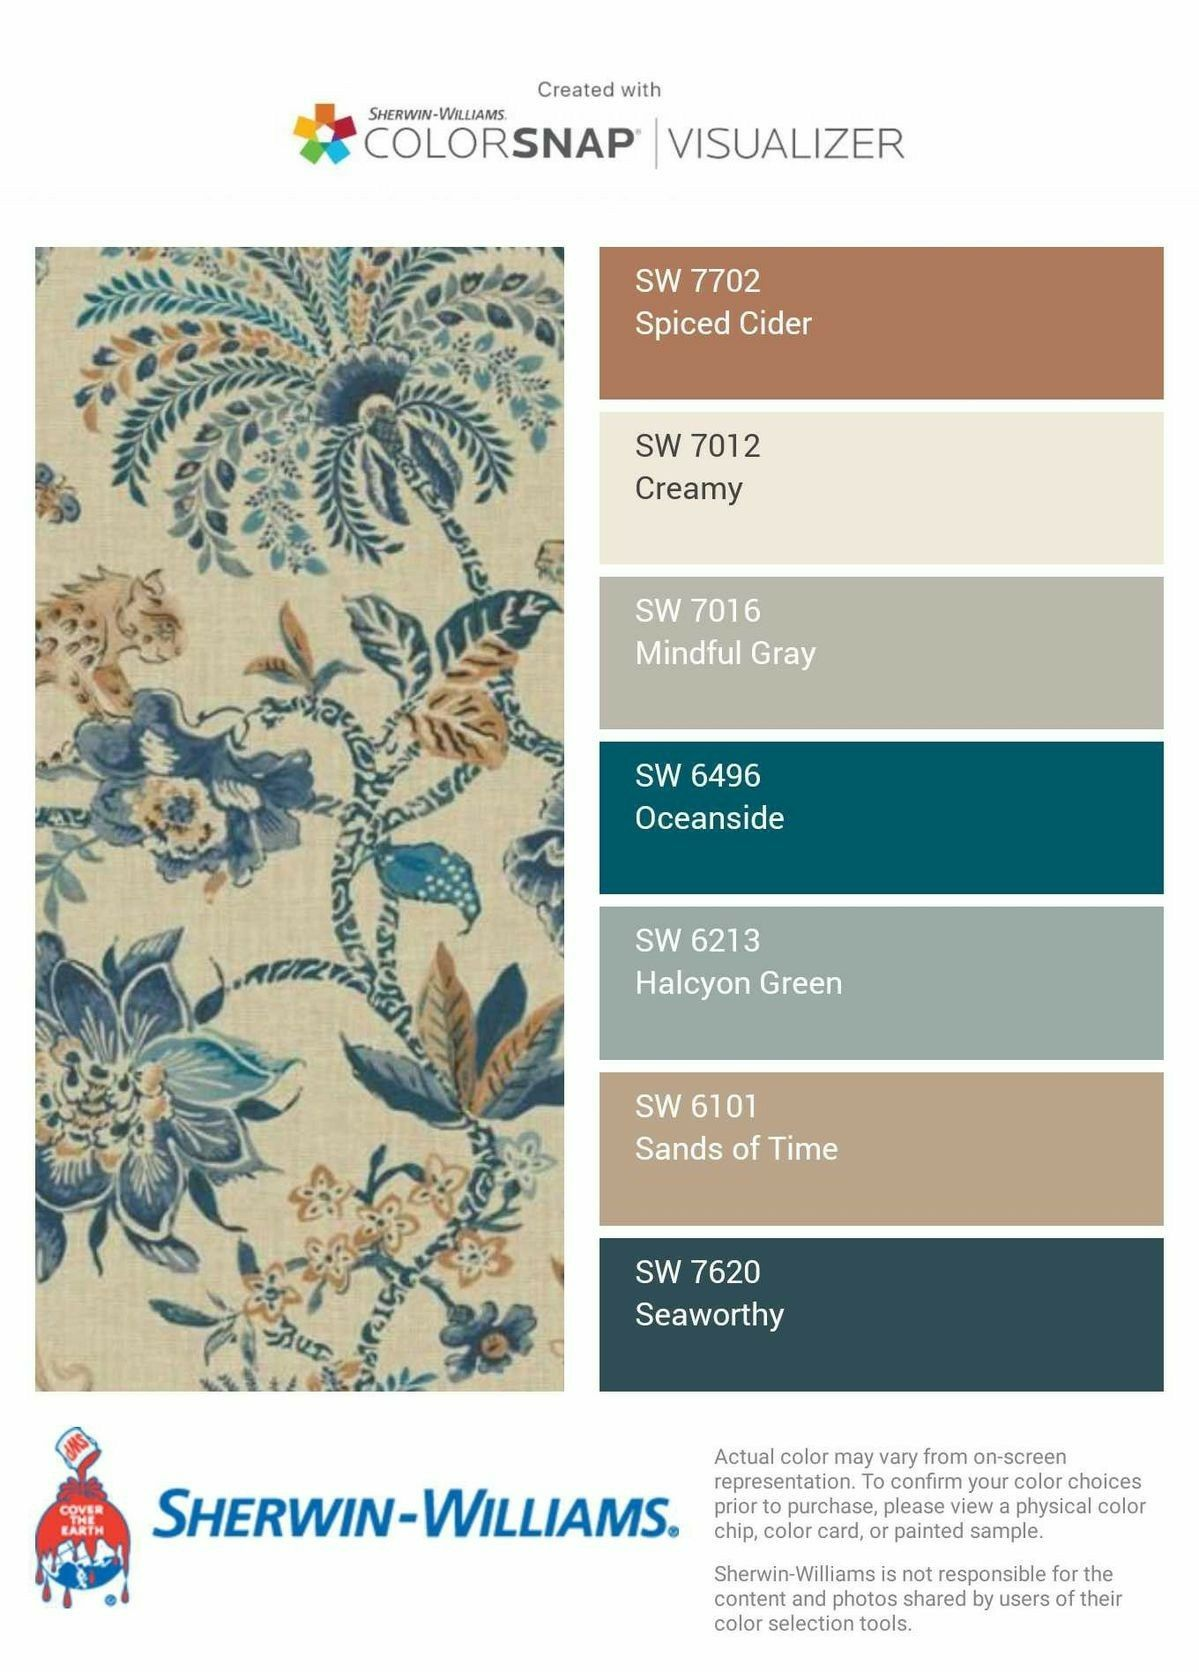 Pin by Ilana Bailey on Tate kitchen in 2020 | House color ...